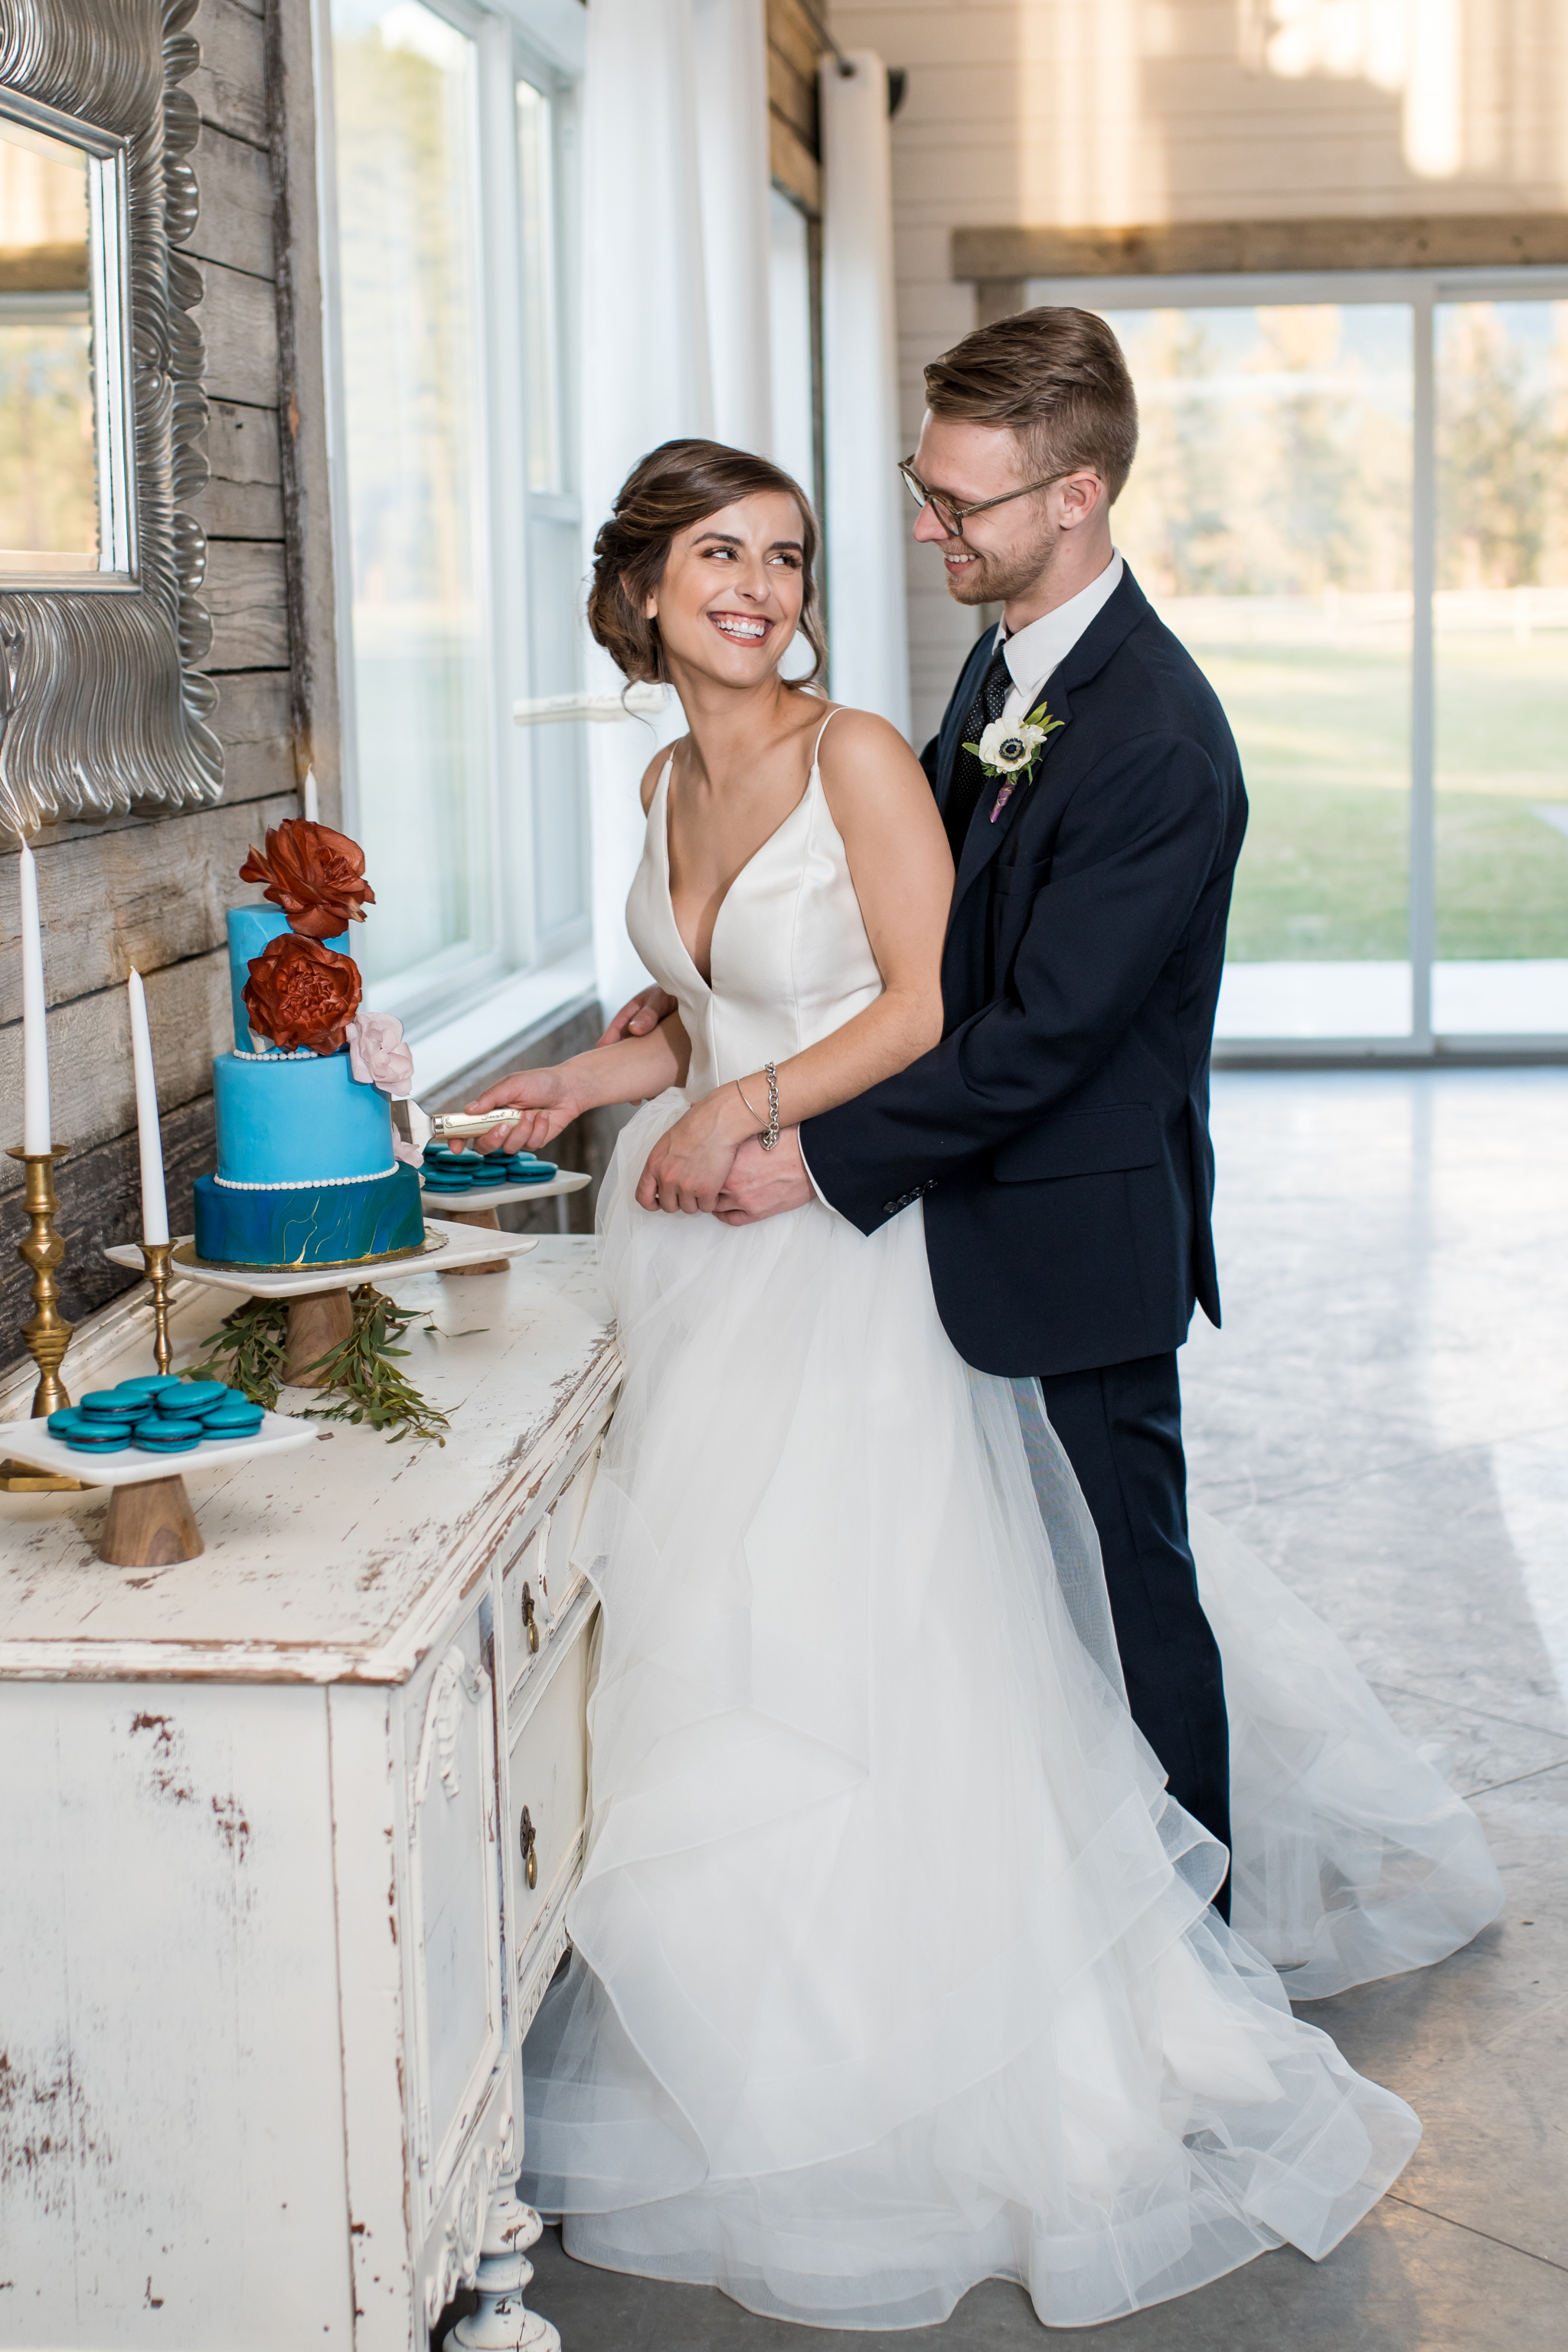 Jewel Tone Wedding Styled Shoot_Silver Knot_Montana Wedding Planner_Montana Wedding Photographer_Montana Wedding Videography_Honeybee Weddings-0781.jpg